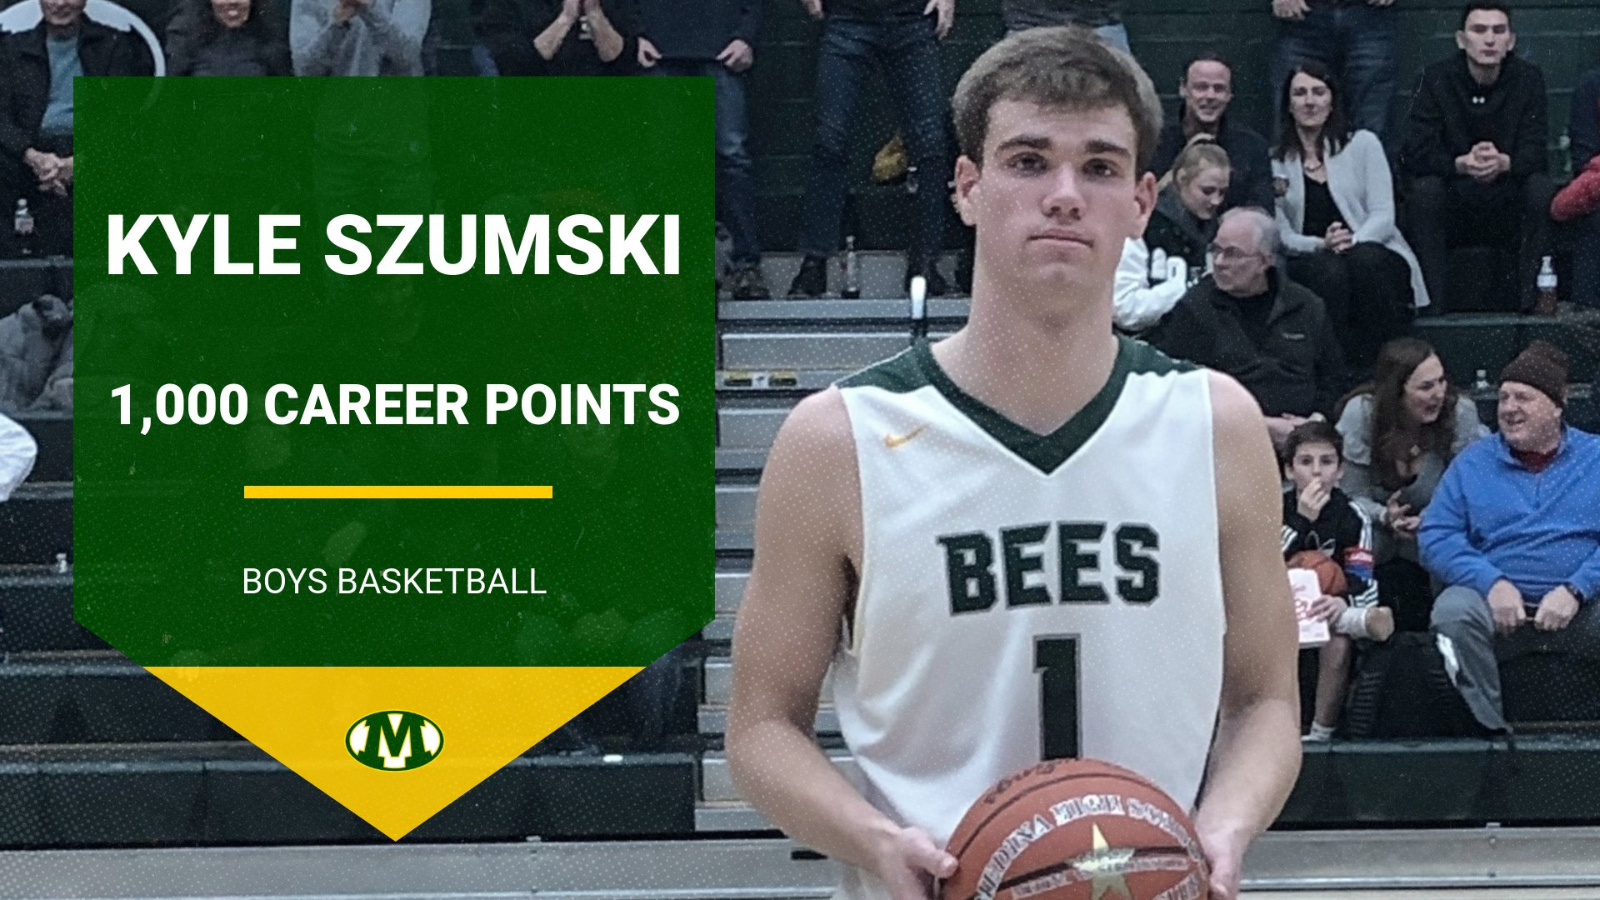 Congratulations to Kyle Szumski on Scoring his 1,000th Career Point